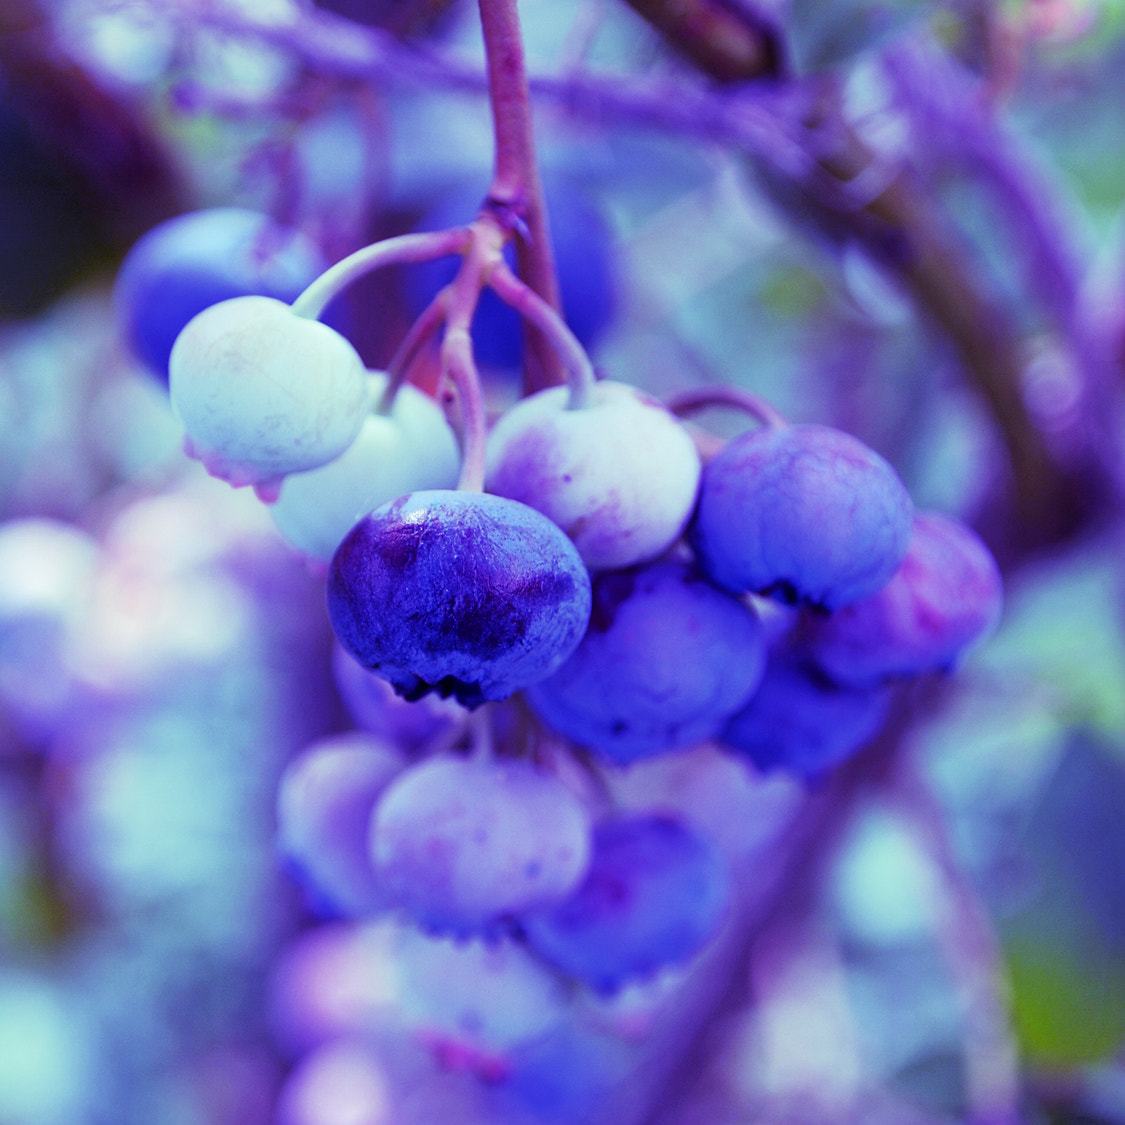 Photograph Blueberries by Karolína Švecová on 500px